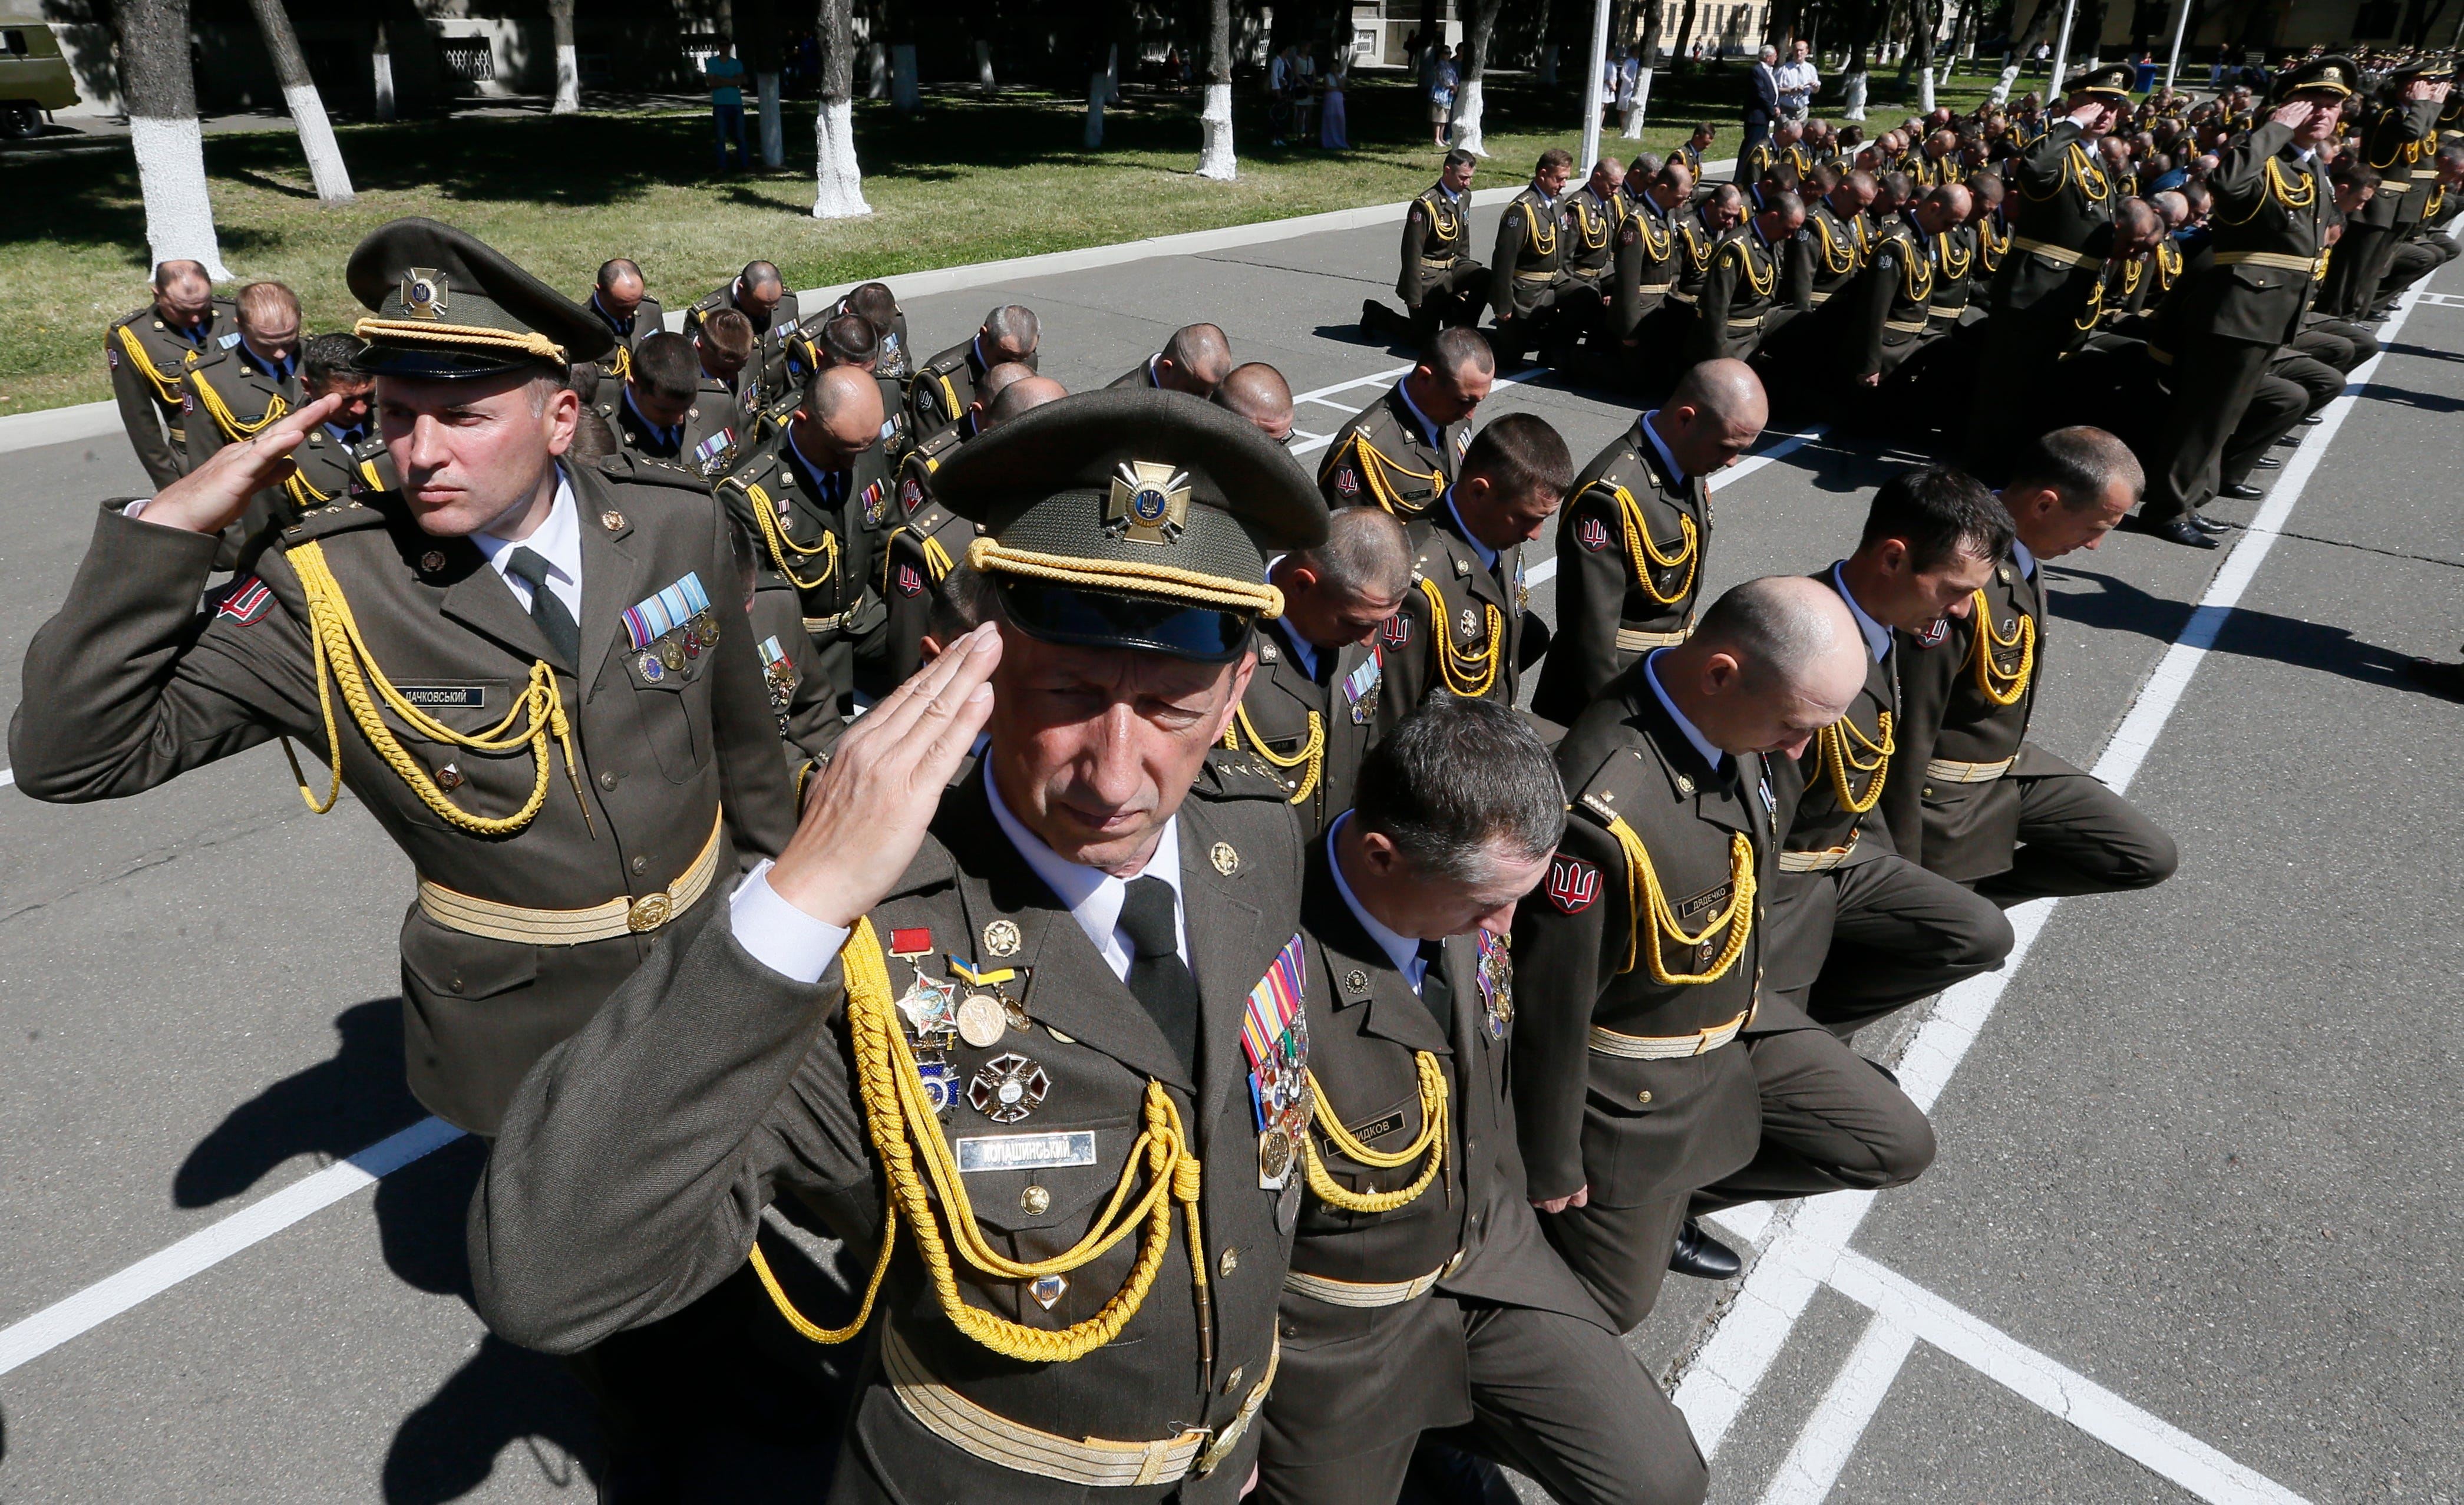 Ukrainian officers kneel in honor of their lost friends during the Graduation Day of the National Defense University, in Kiev, Ukraine. About 500 officers received their diplomas.